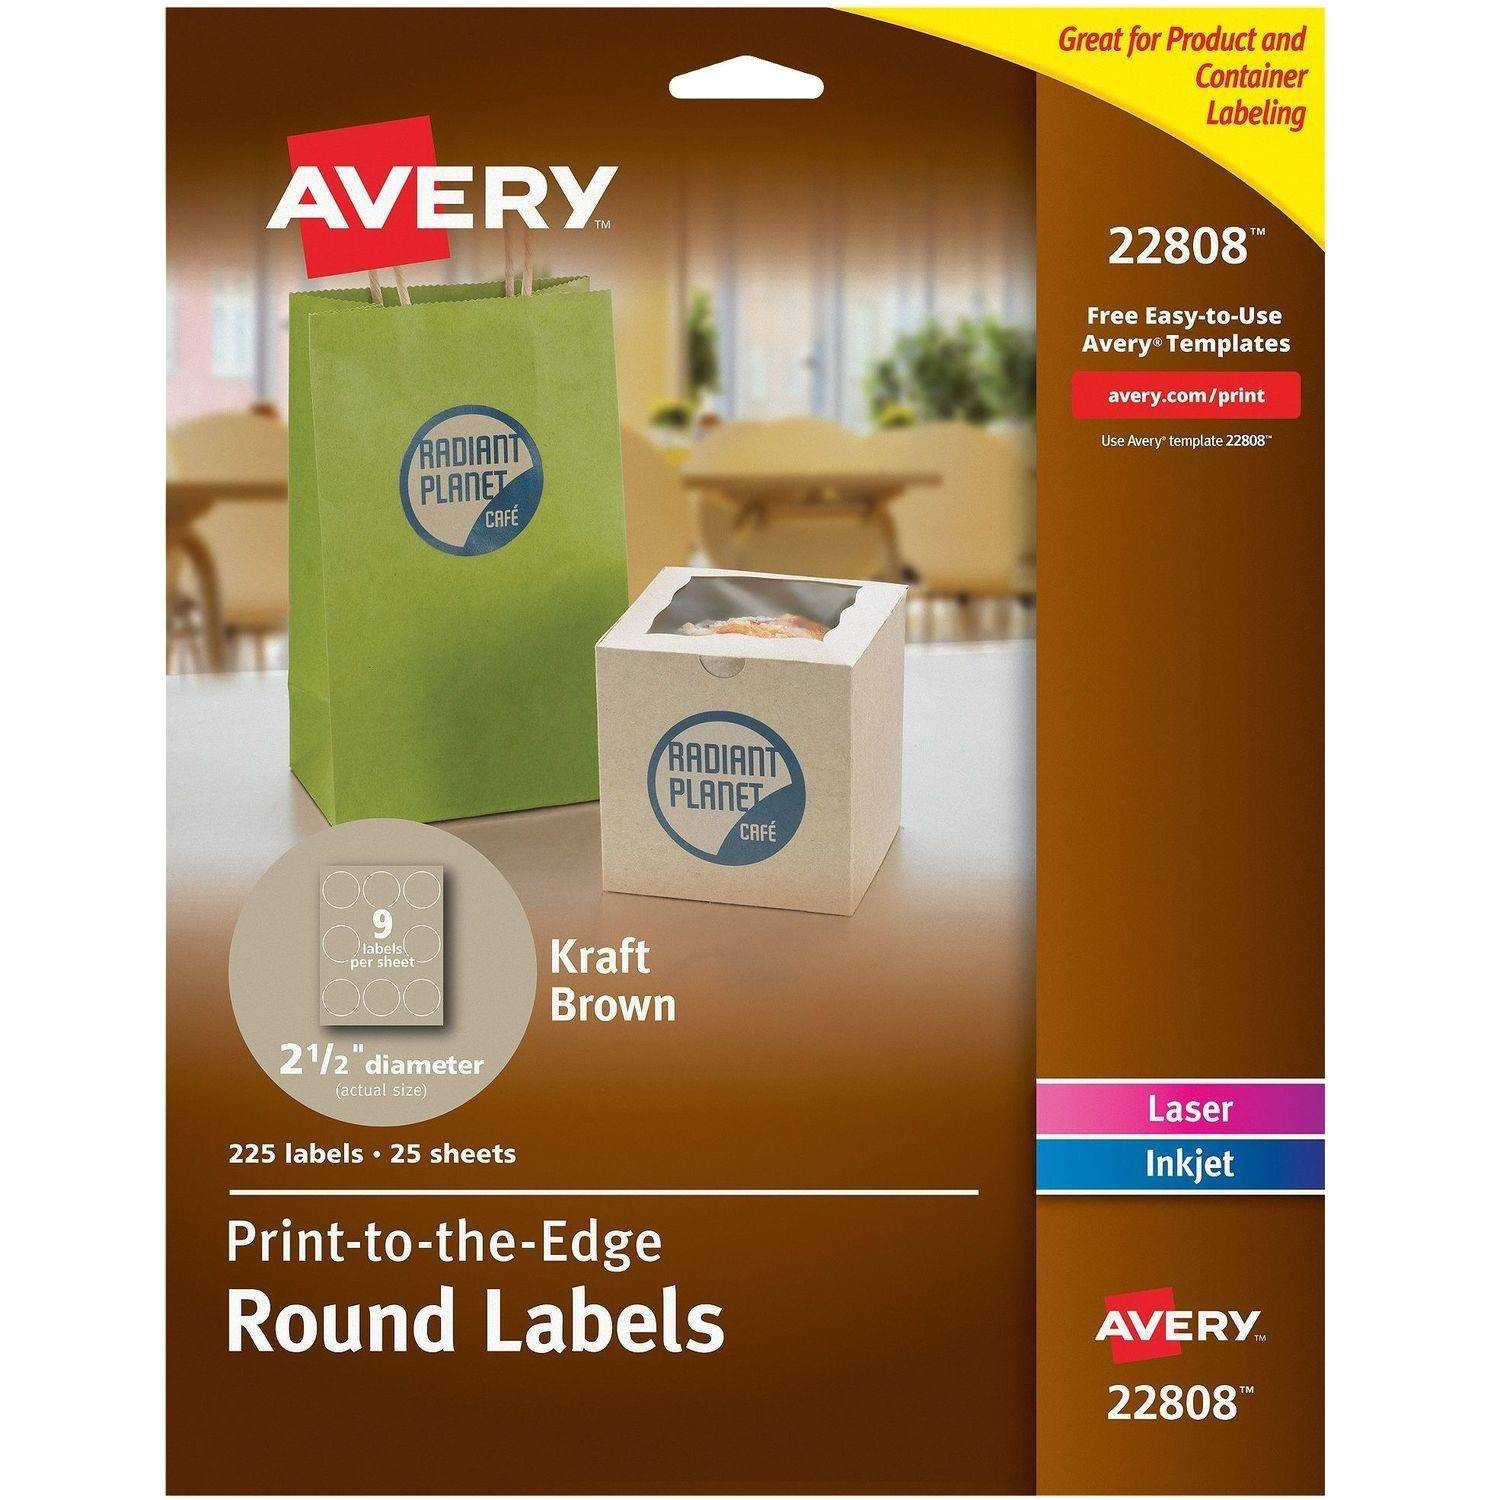 Avery 1 Inch Round Labels Template Avery 5167 Easy Peel White Return Address Labels for Laser